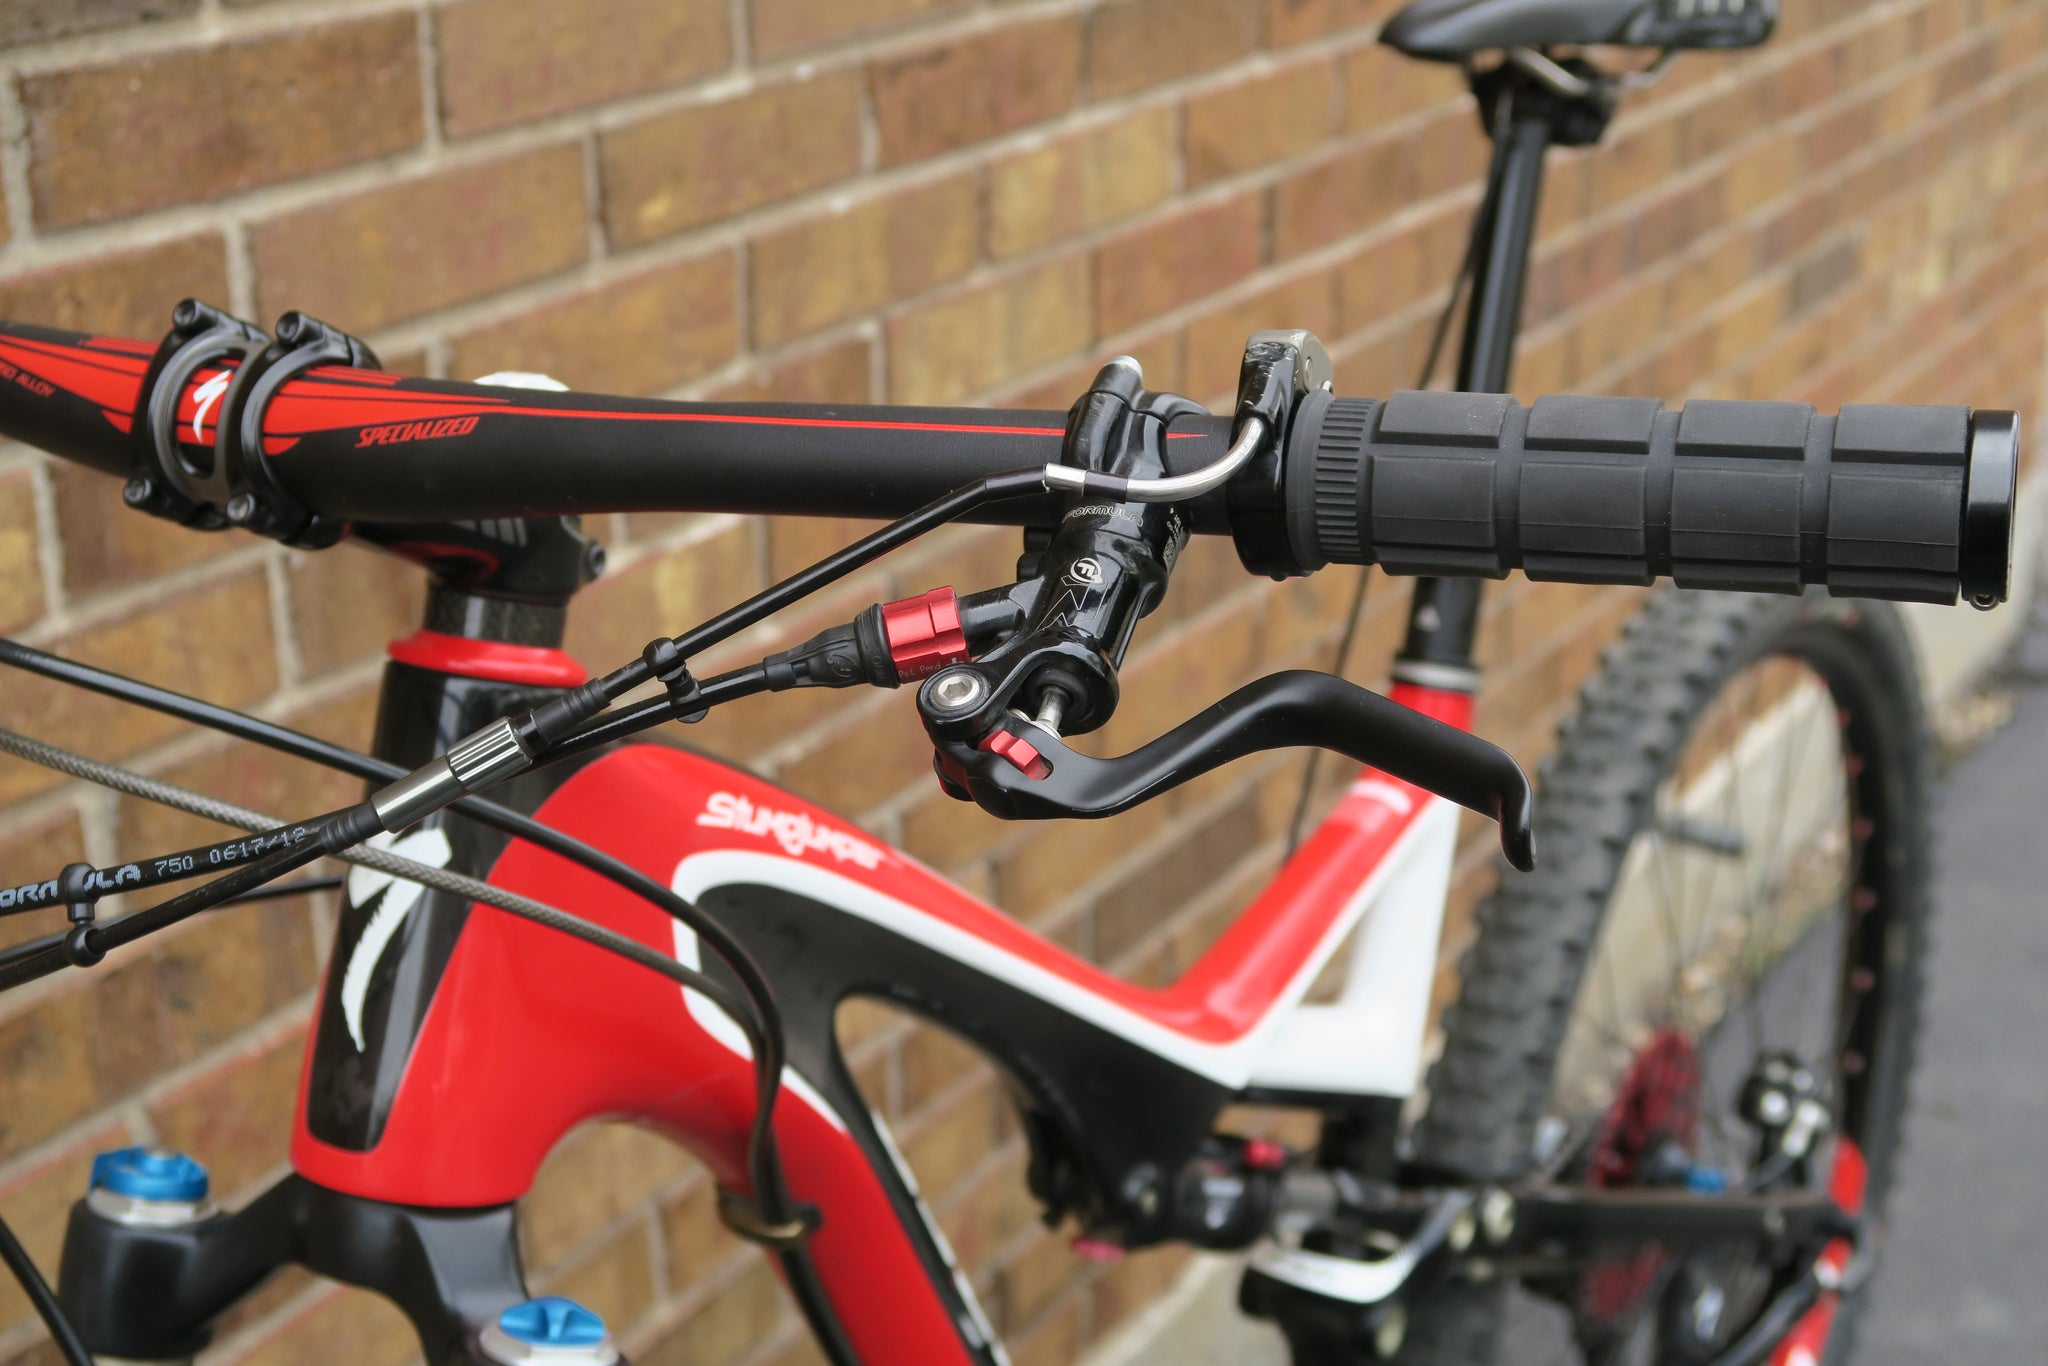 2012 SPECIALIZED STUMPJUMPER FSR EXPERT CARBON 29